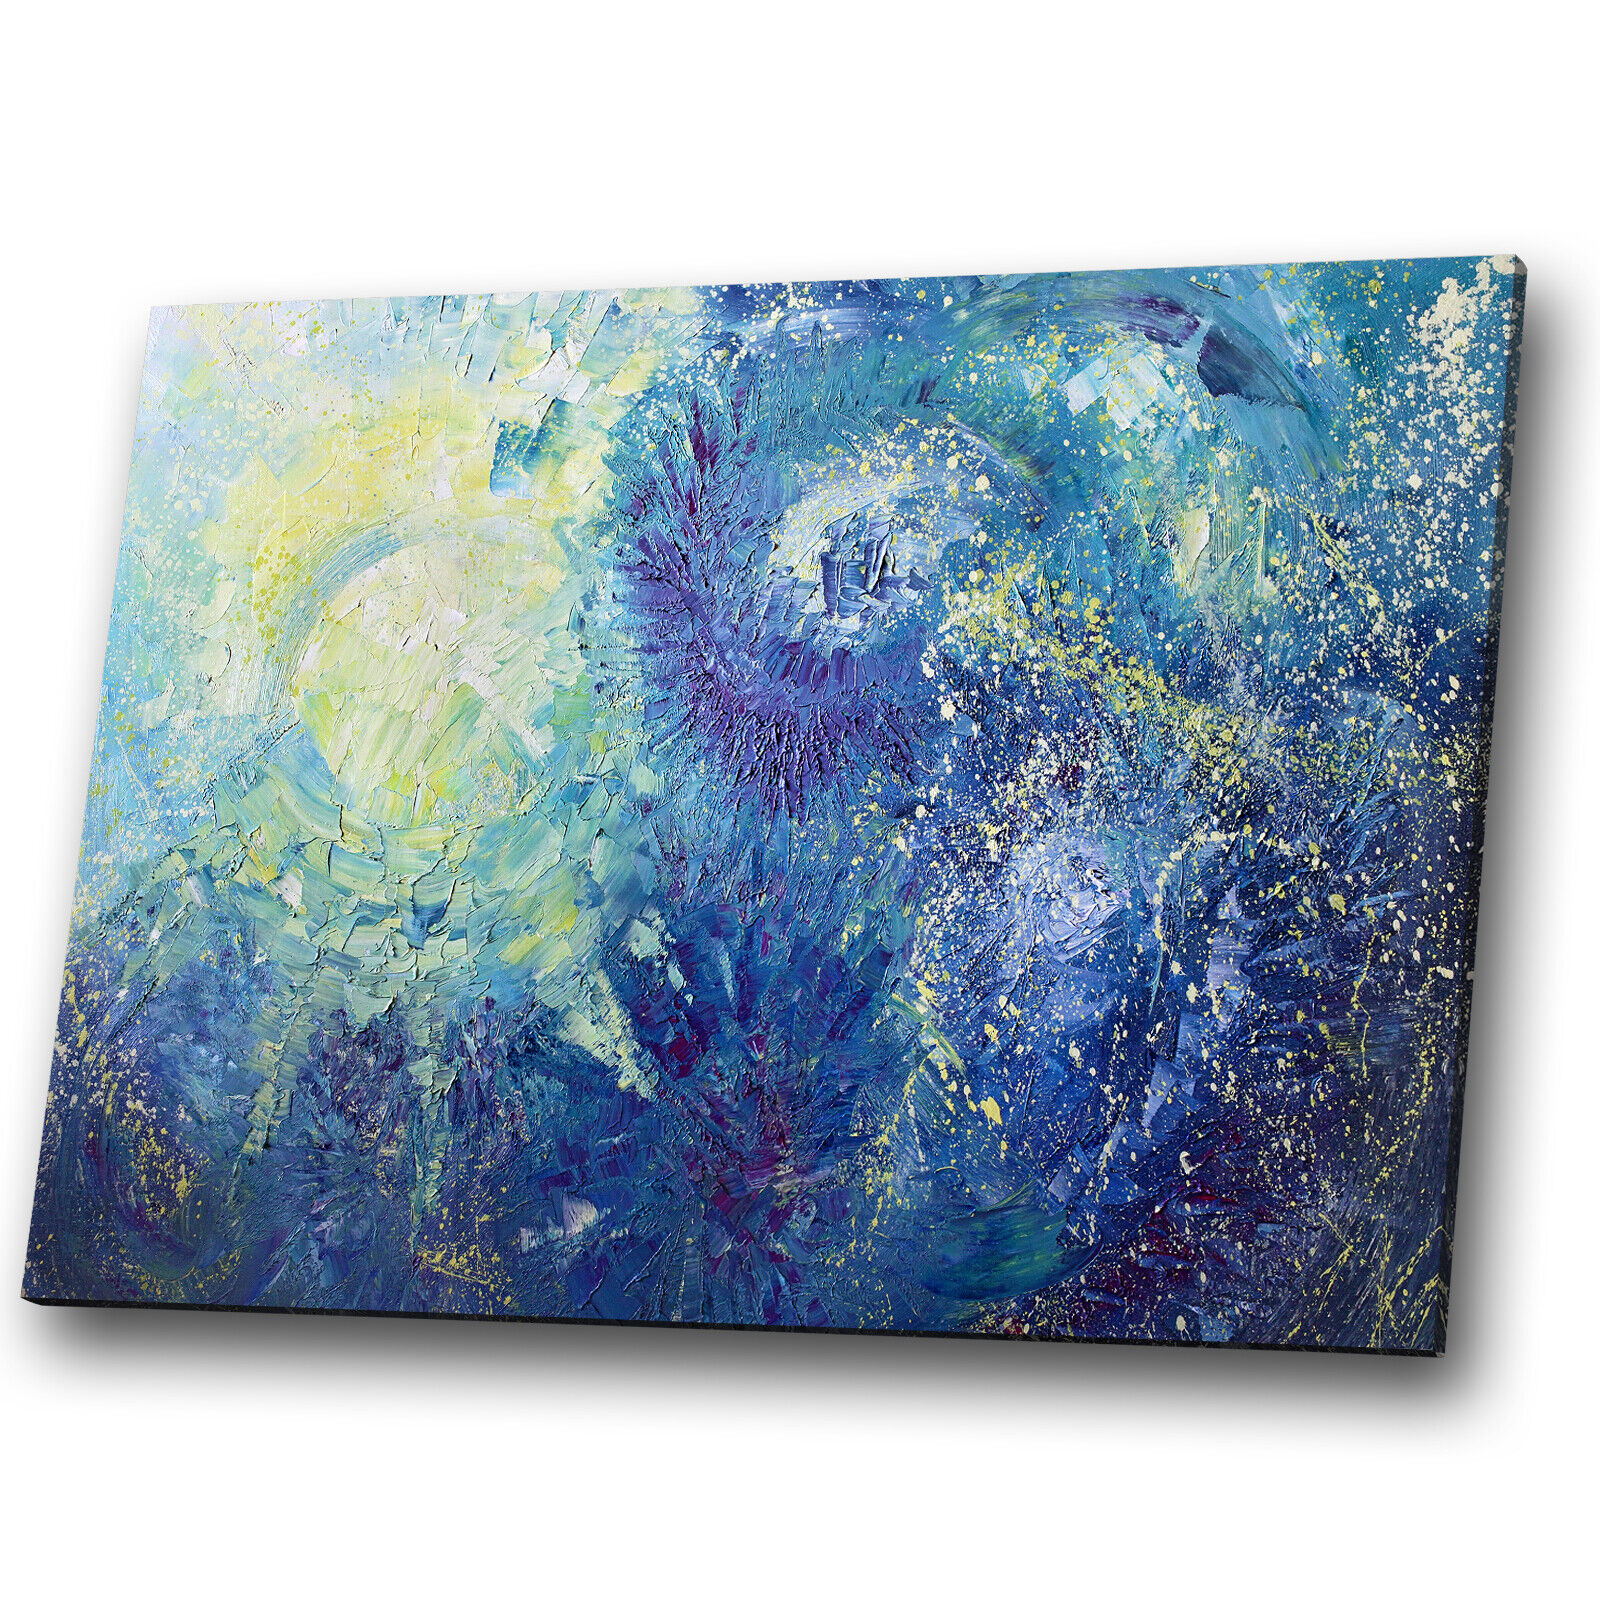 Blau Gelb Grün Weiß Cool Abstract Canvas Wall Art Large Picture Print